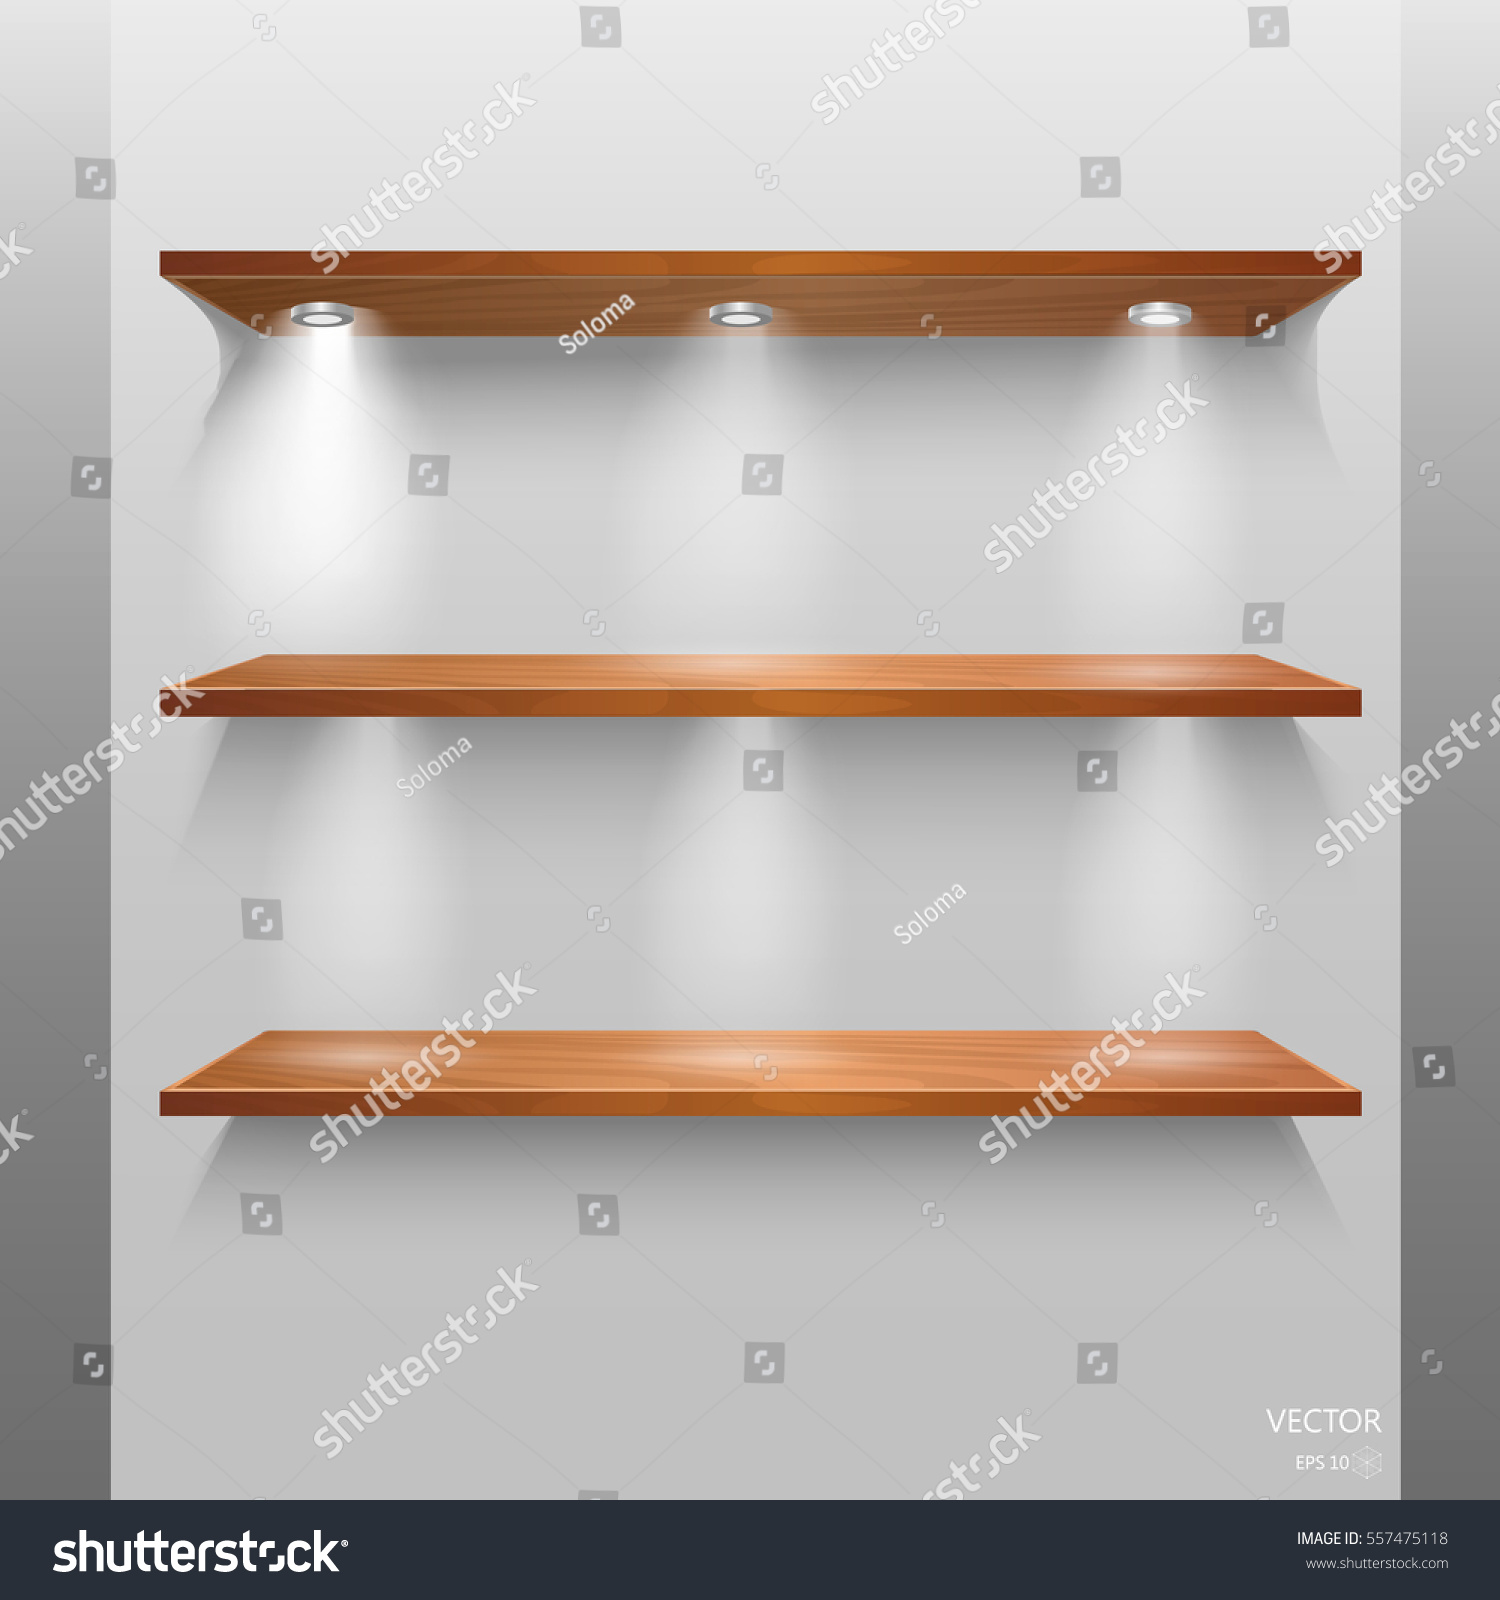 Interior wooden shelves free vector - Vector Empty Wooden Shelves Isolated On Wall Background